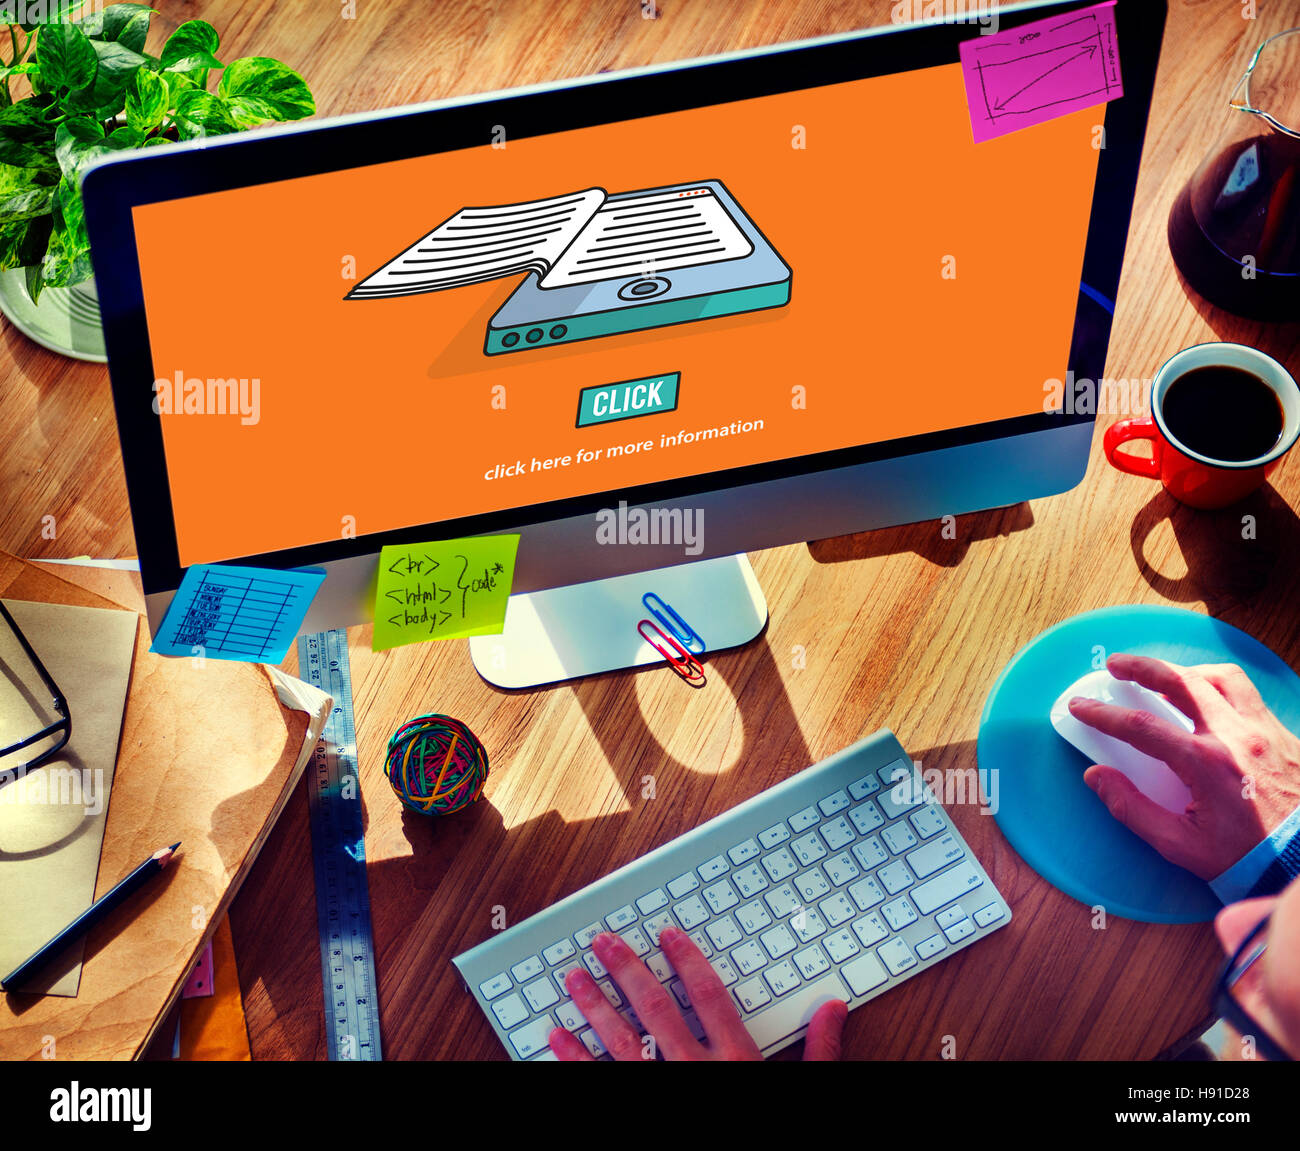 Ebook Reading Digital Learning Modern Concept - Stock Image